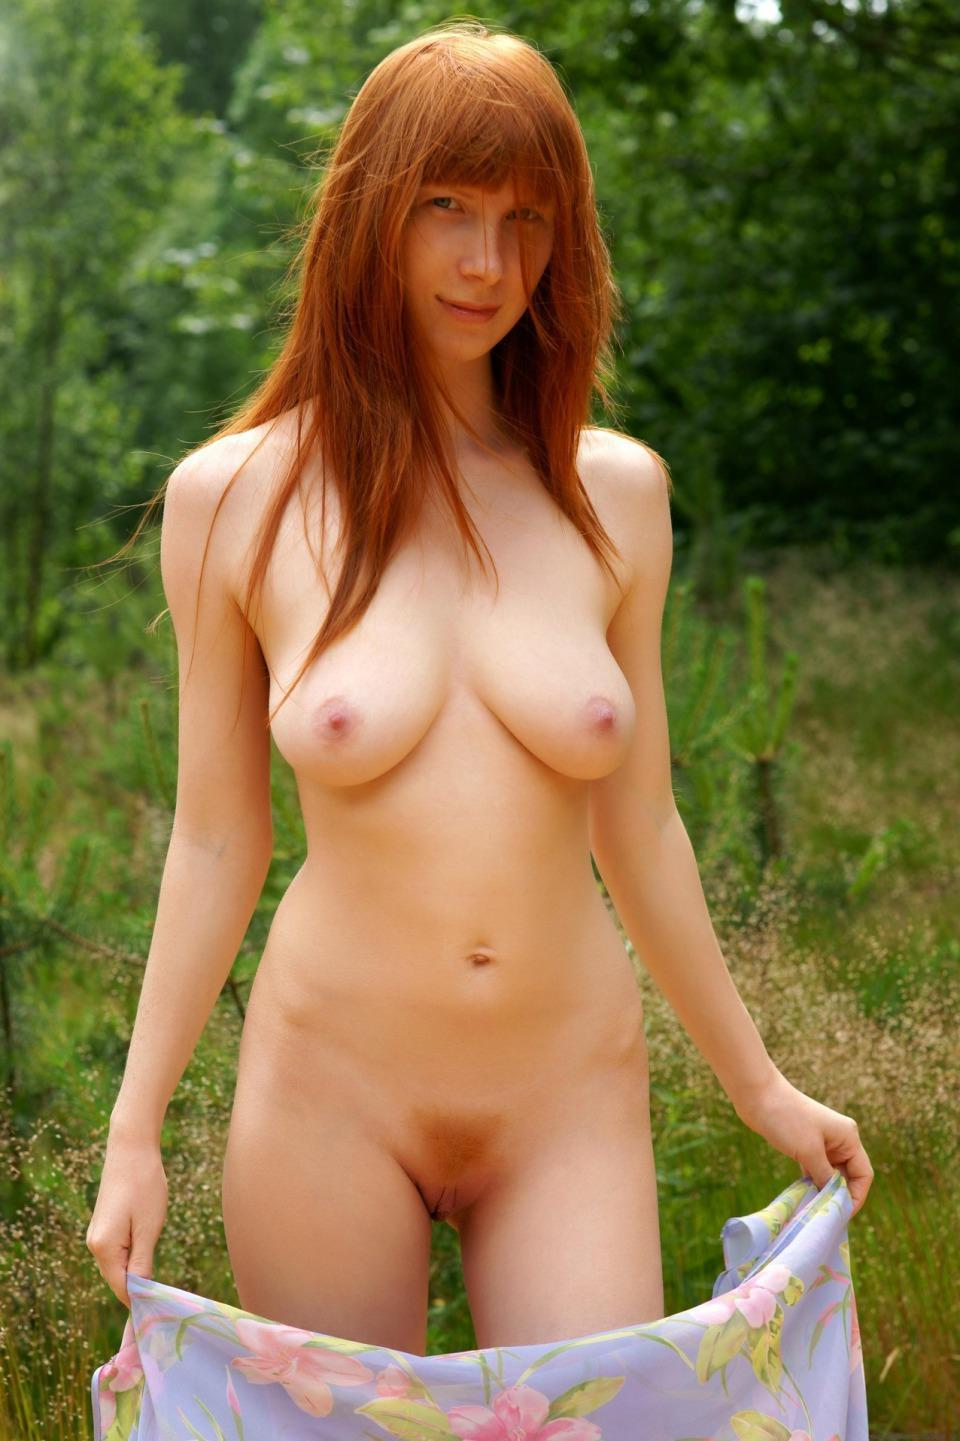 Share your beautiful nude red headed women something